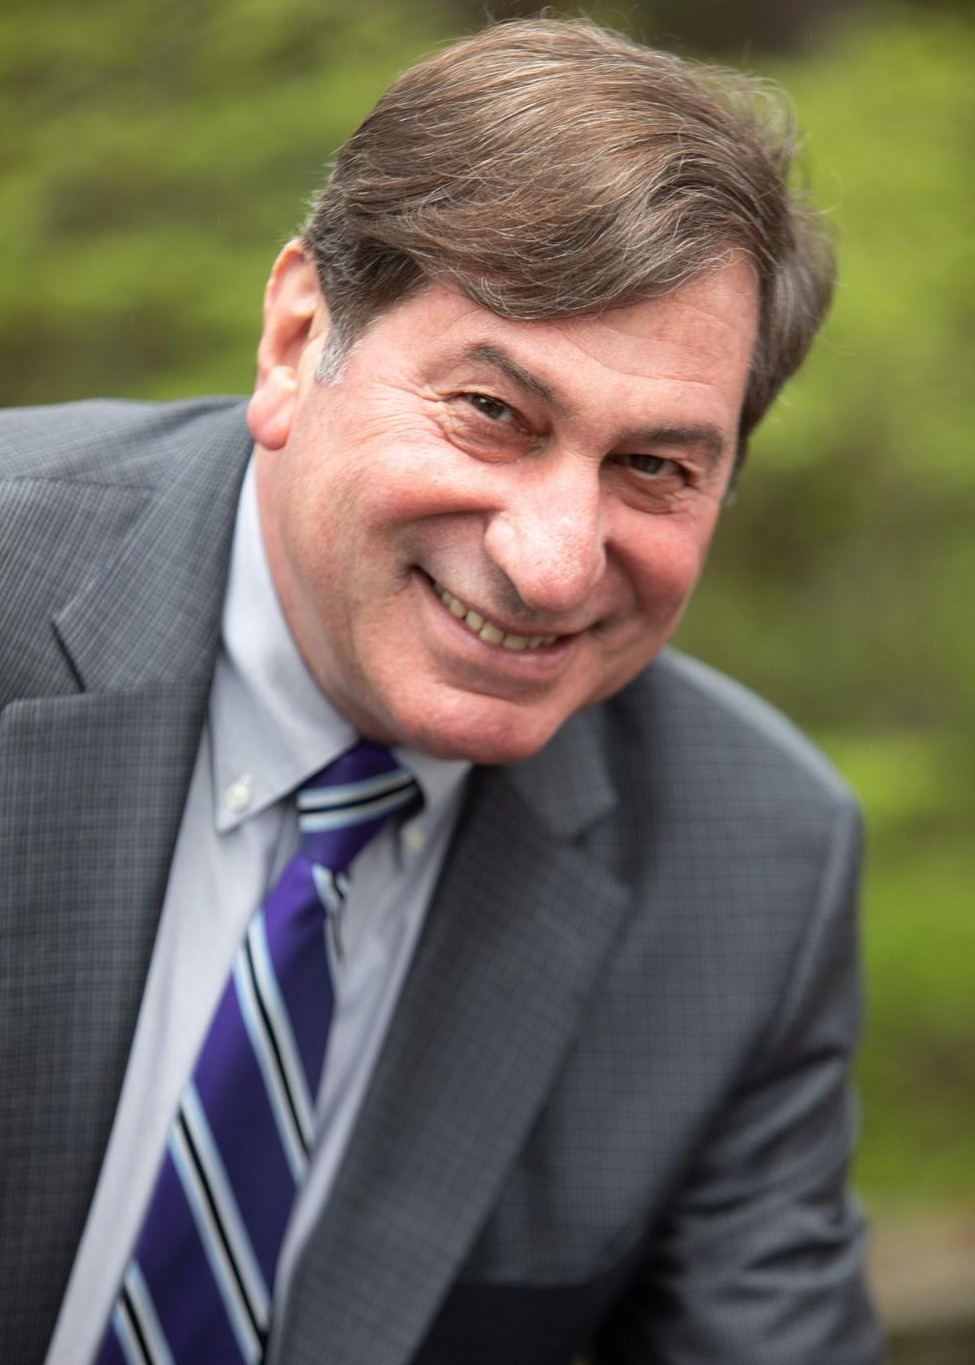 Alan M. Rothstein, CPA/PFS Photo